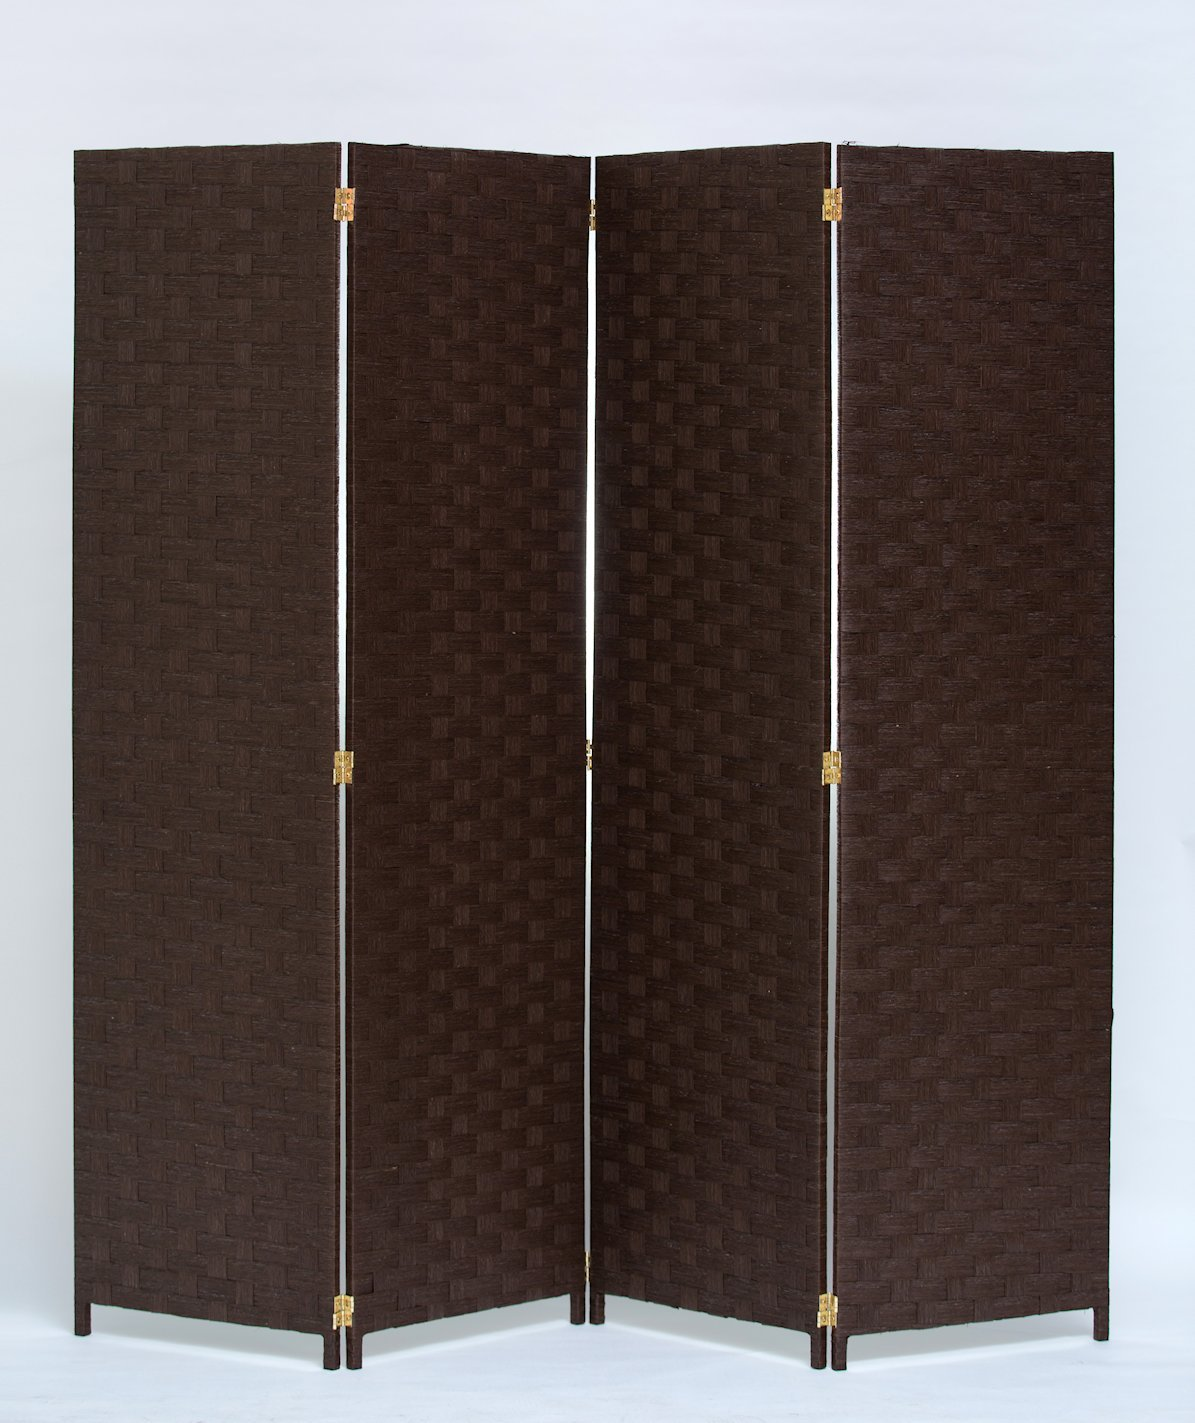 Room Divider 4 Panel Weave Design Paper Fiber Brown Color By Legacy Decor by Legacy Decor